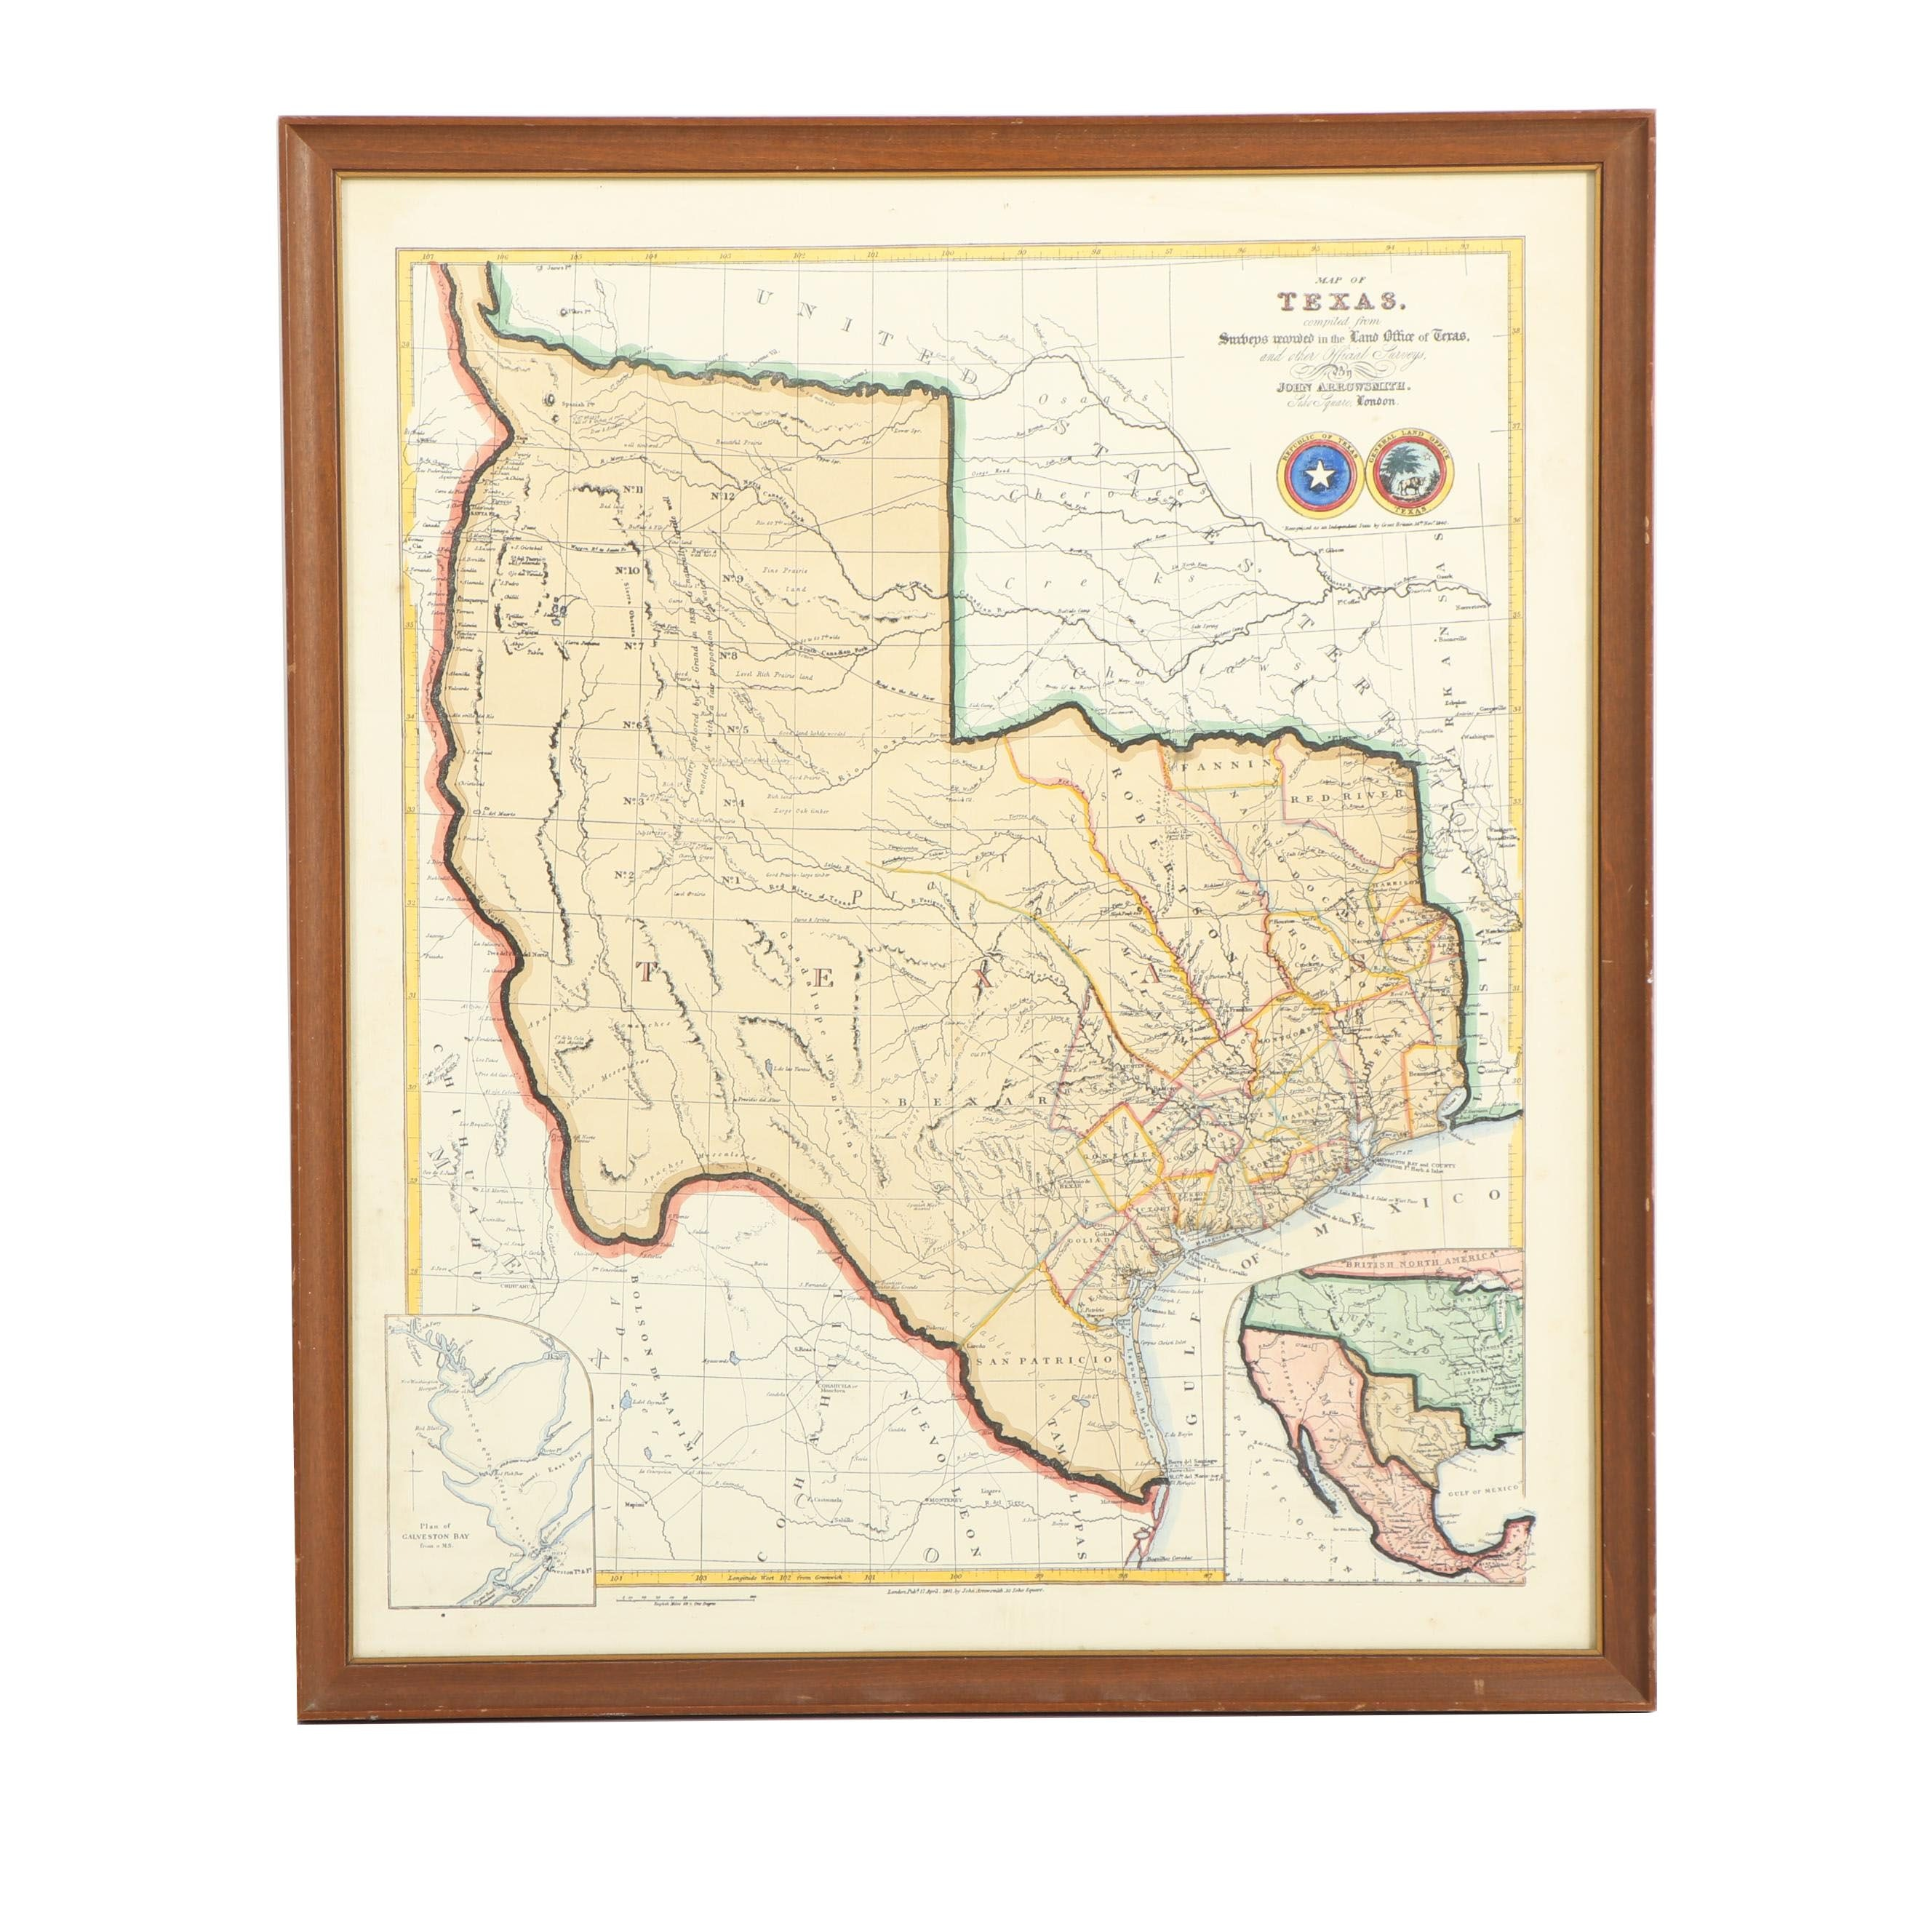 Hand-Colored Etched Map of the Republic of Texas